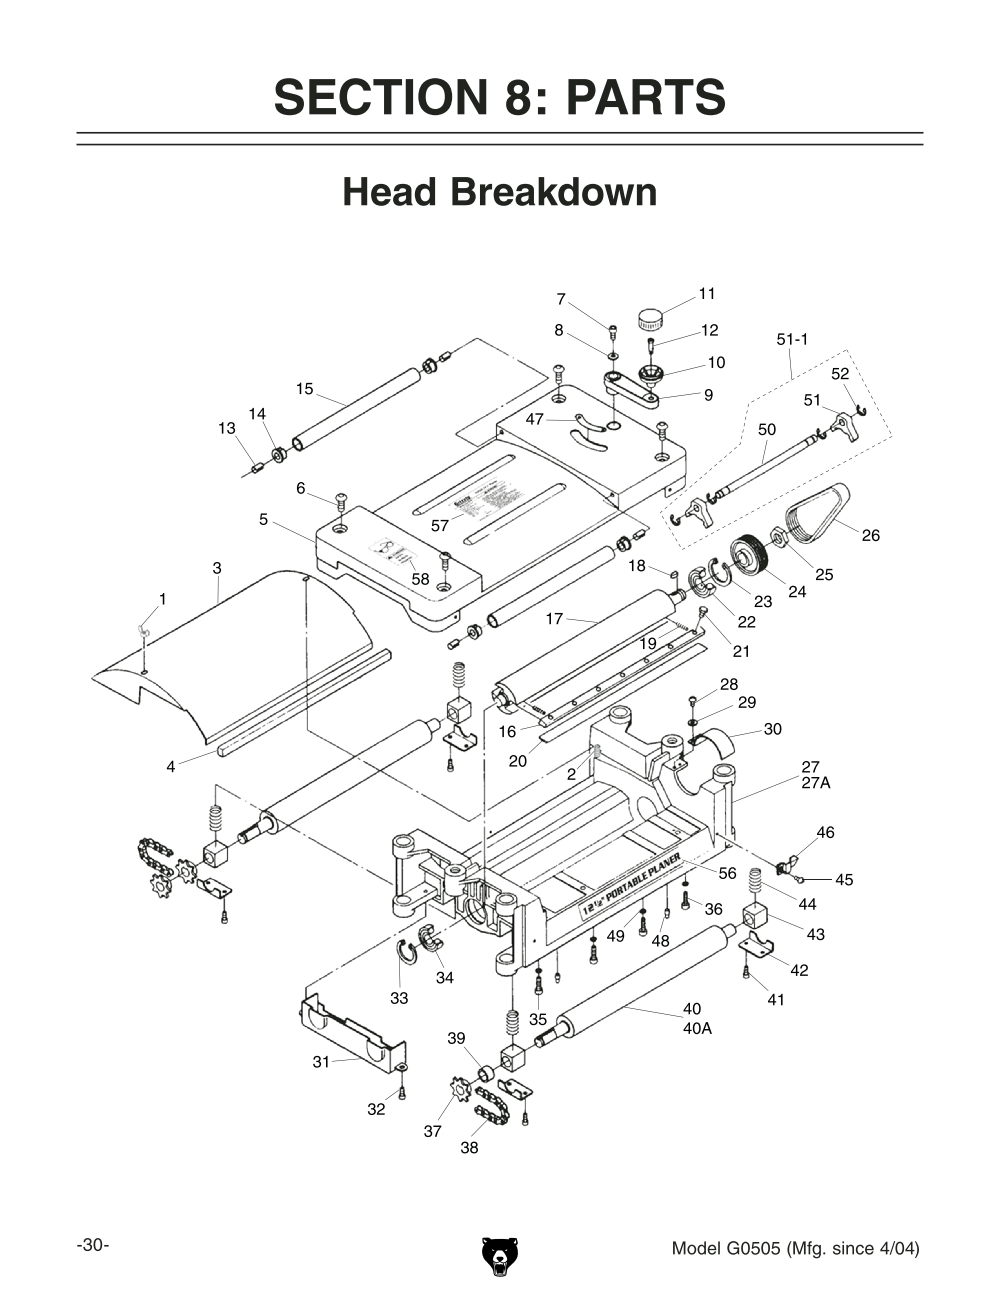 Ammco 4000 Brake Lathe Parts Breakdown - Best Brake 2017 regarding Ammco 4000 Brake Lathe Parts Diagram